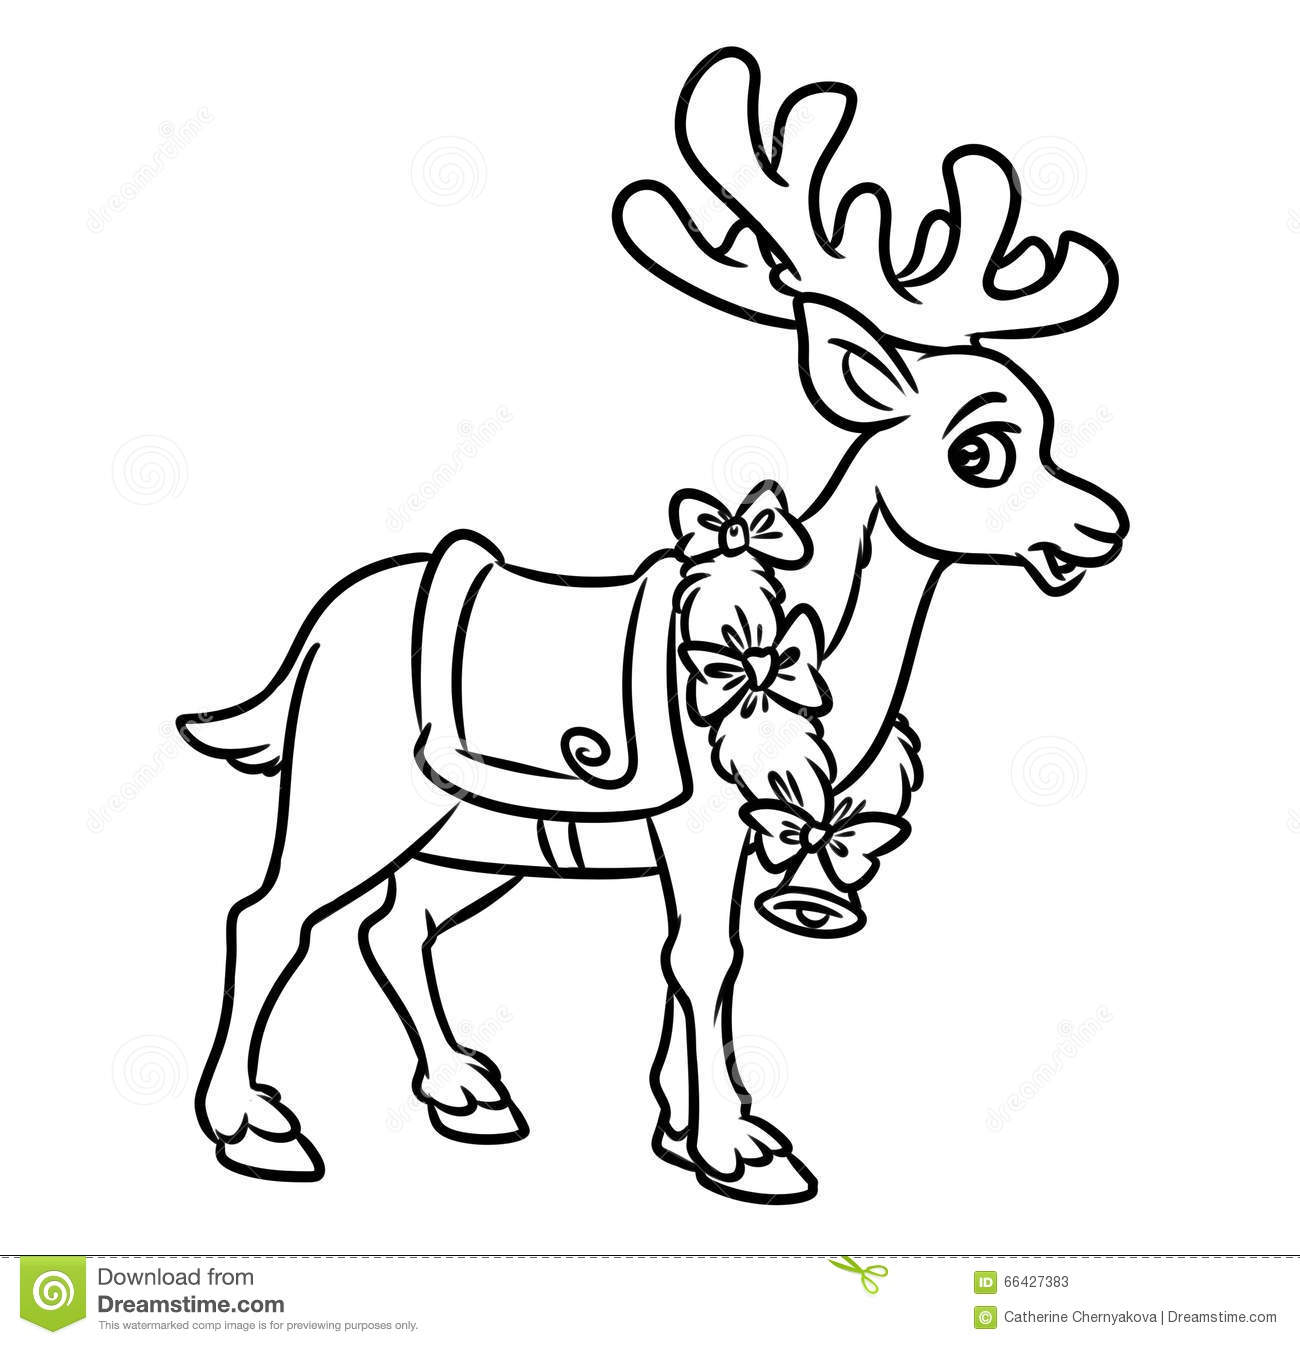 - Baby Reindeer Coloring Pages. Baby Reindeer Coloring Sheet To